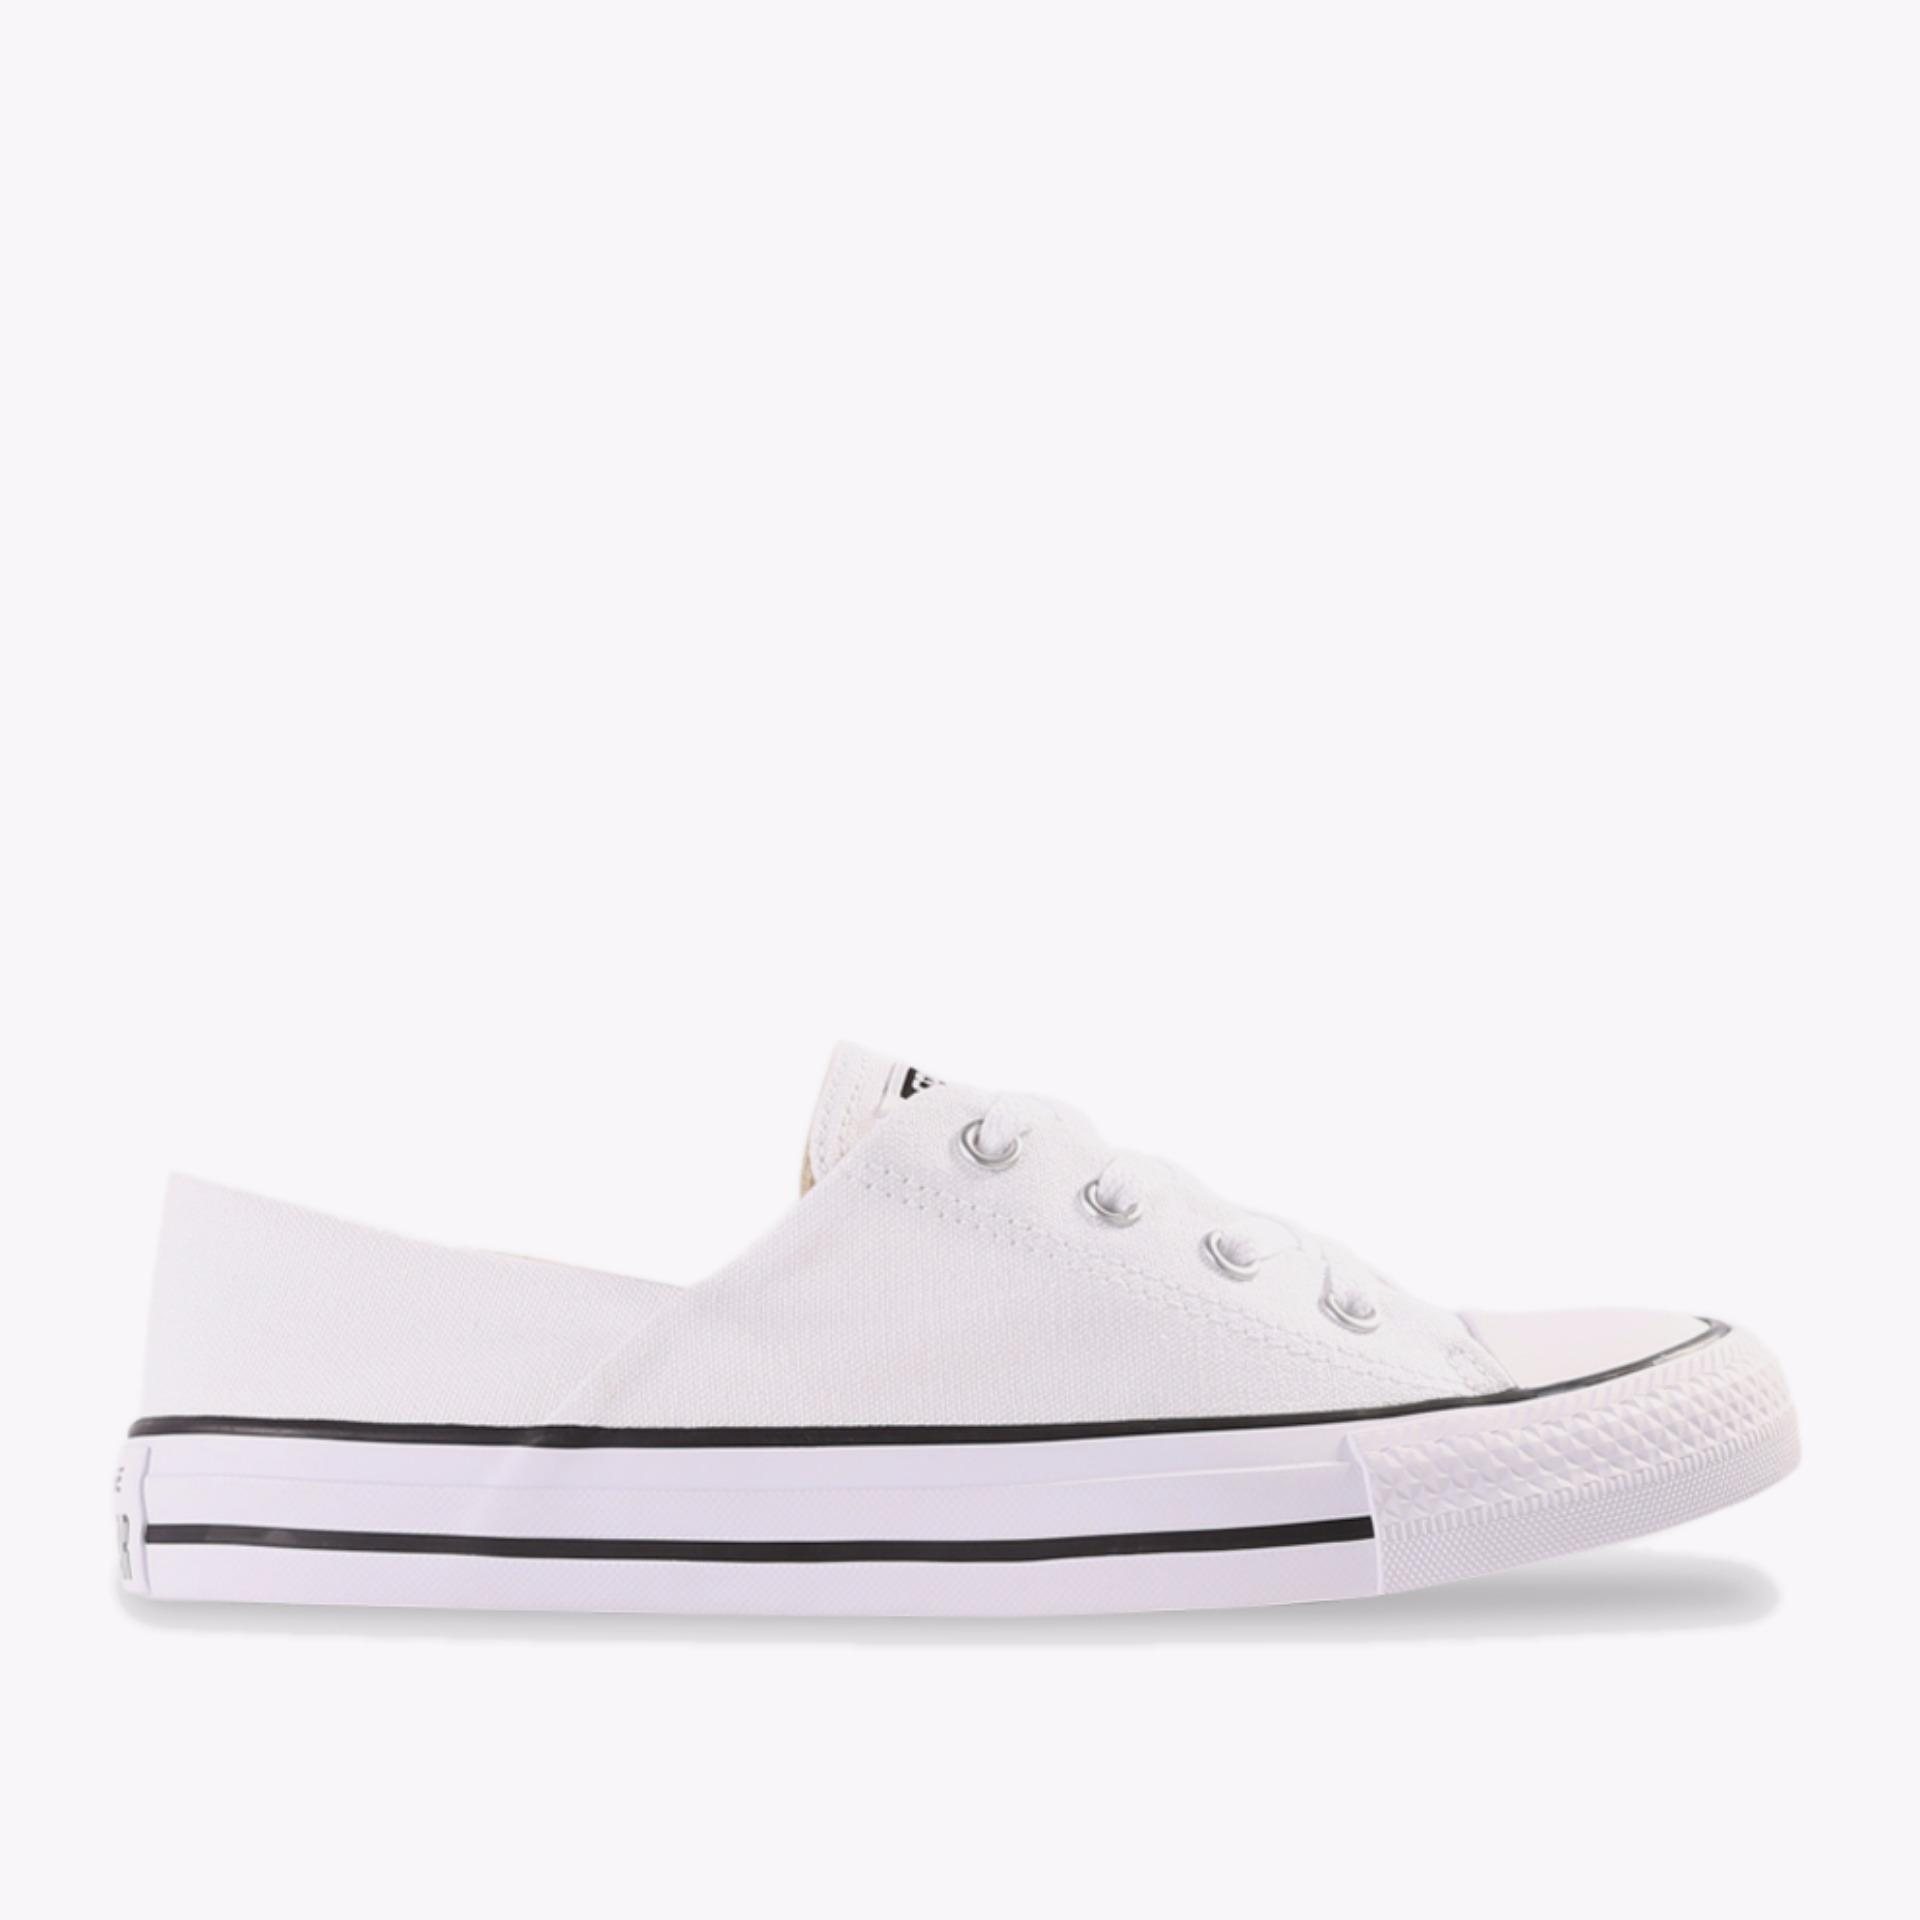 Converse Chuck Taylor All Star Ii Cordura Mens Sneakers Shoes Hitam ... 1e603dff00